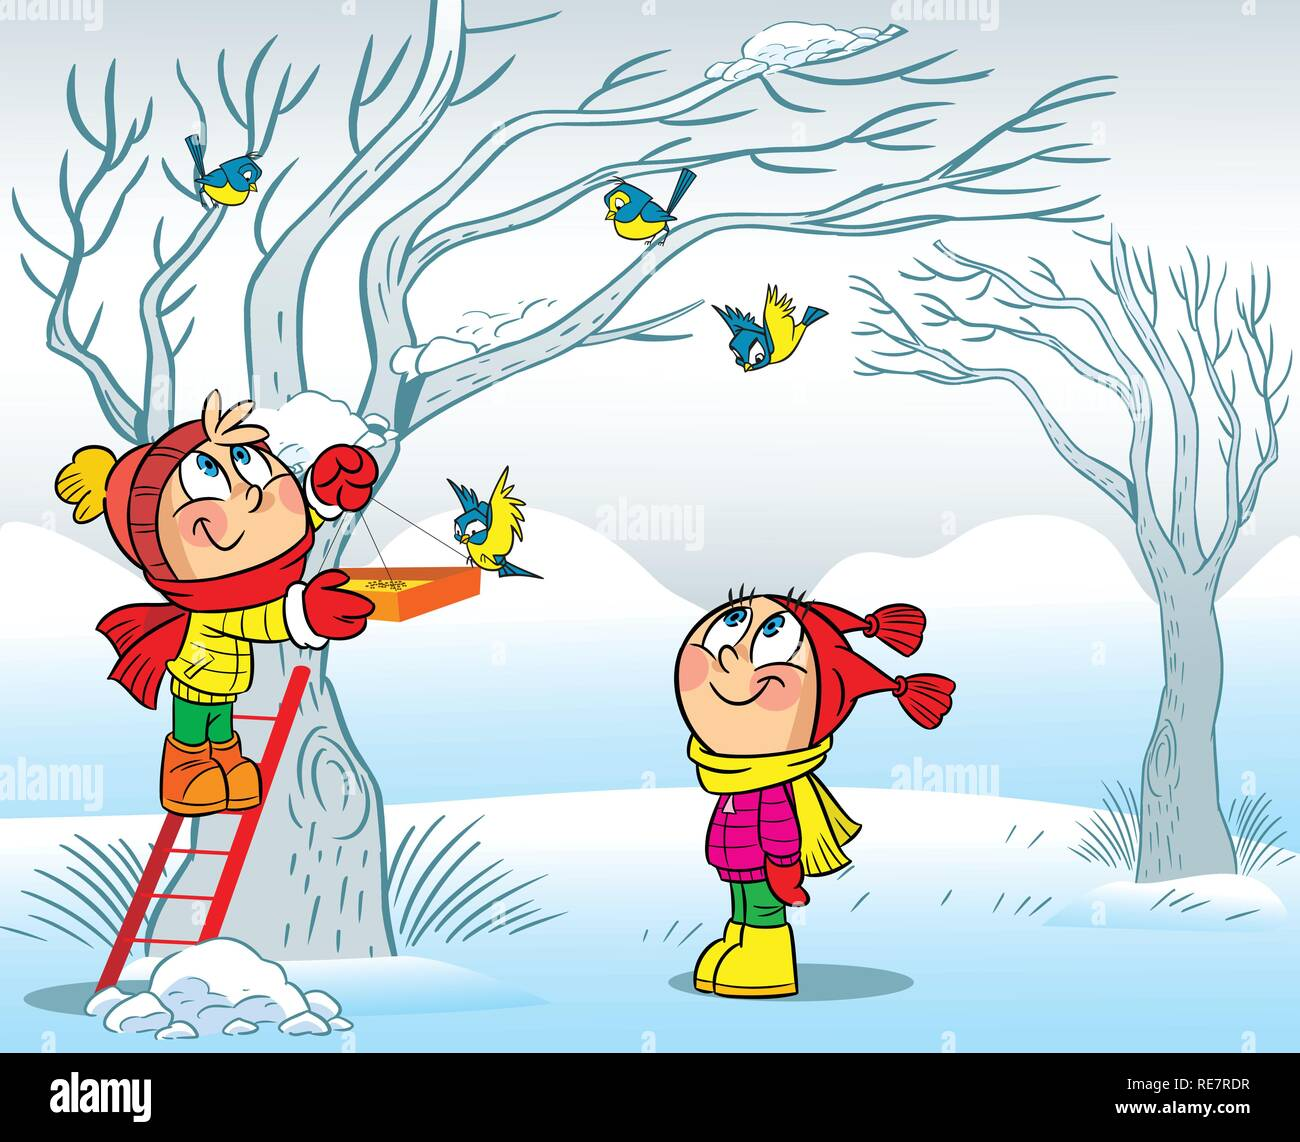 The illustration shows how a boy and a girl feeding birds in winter. Illustration done in cartoon style, on separate layers. - Stock Image